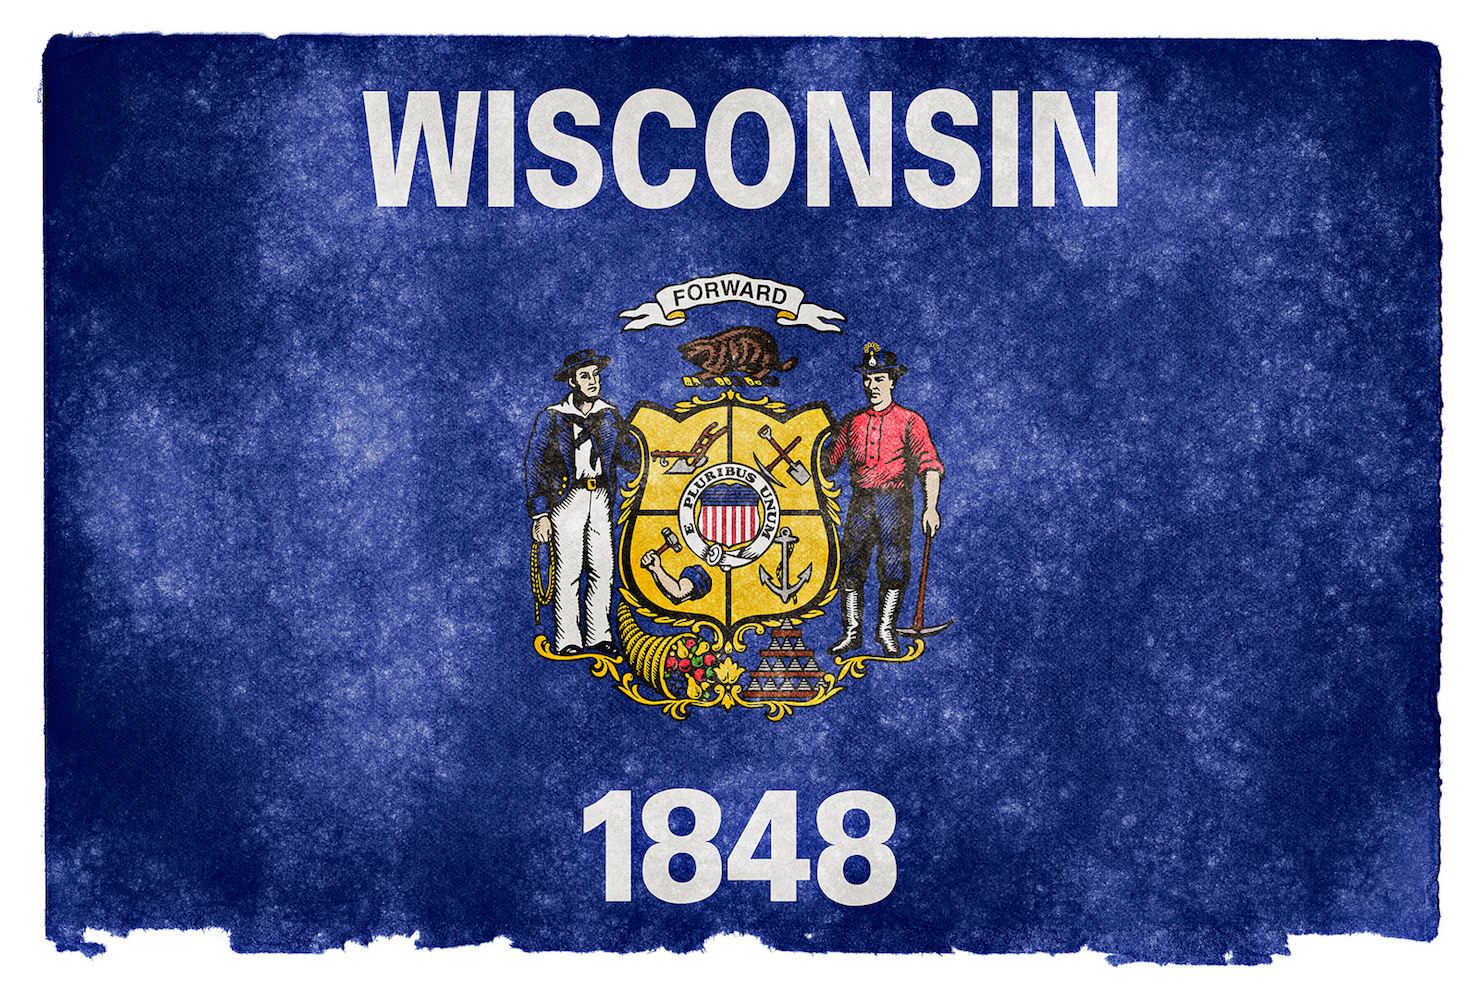 Wisconsin flag stock image